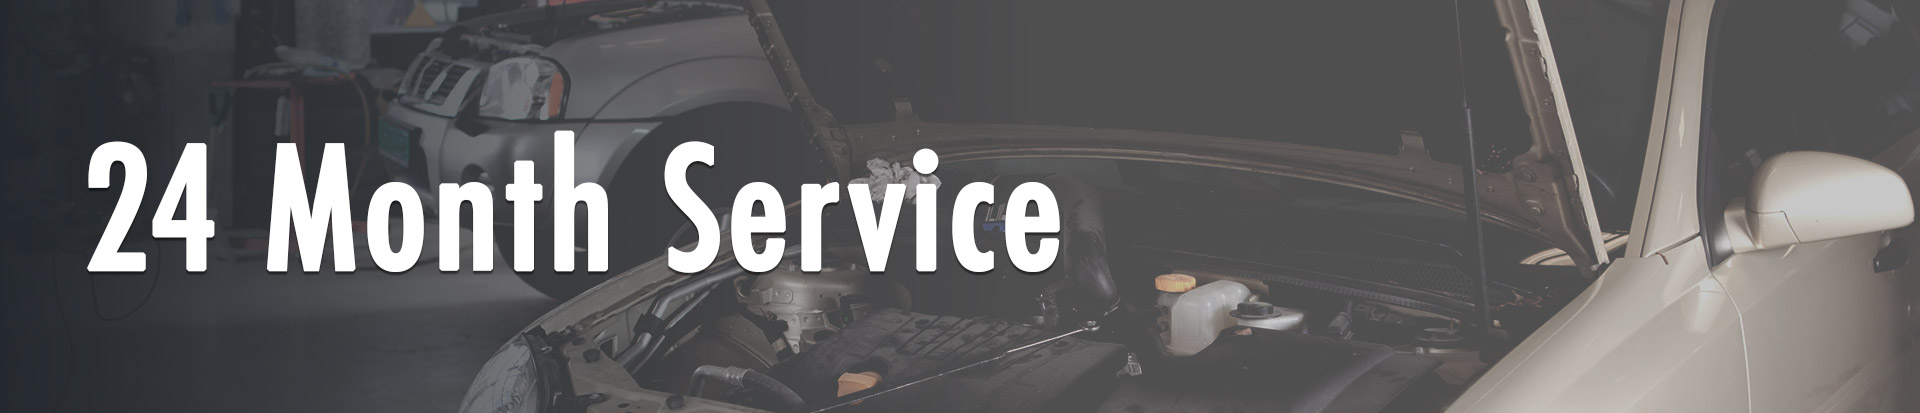 24 Month Vehicle Service Rotherham